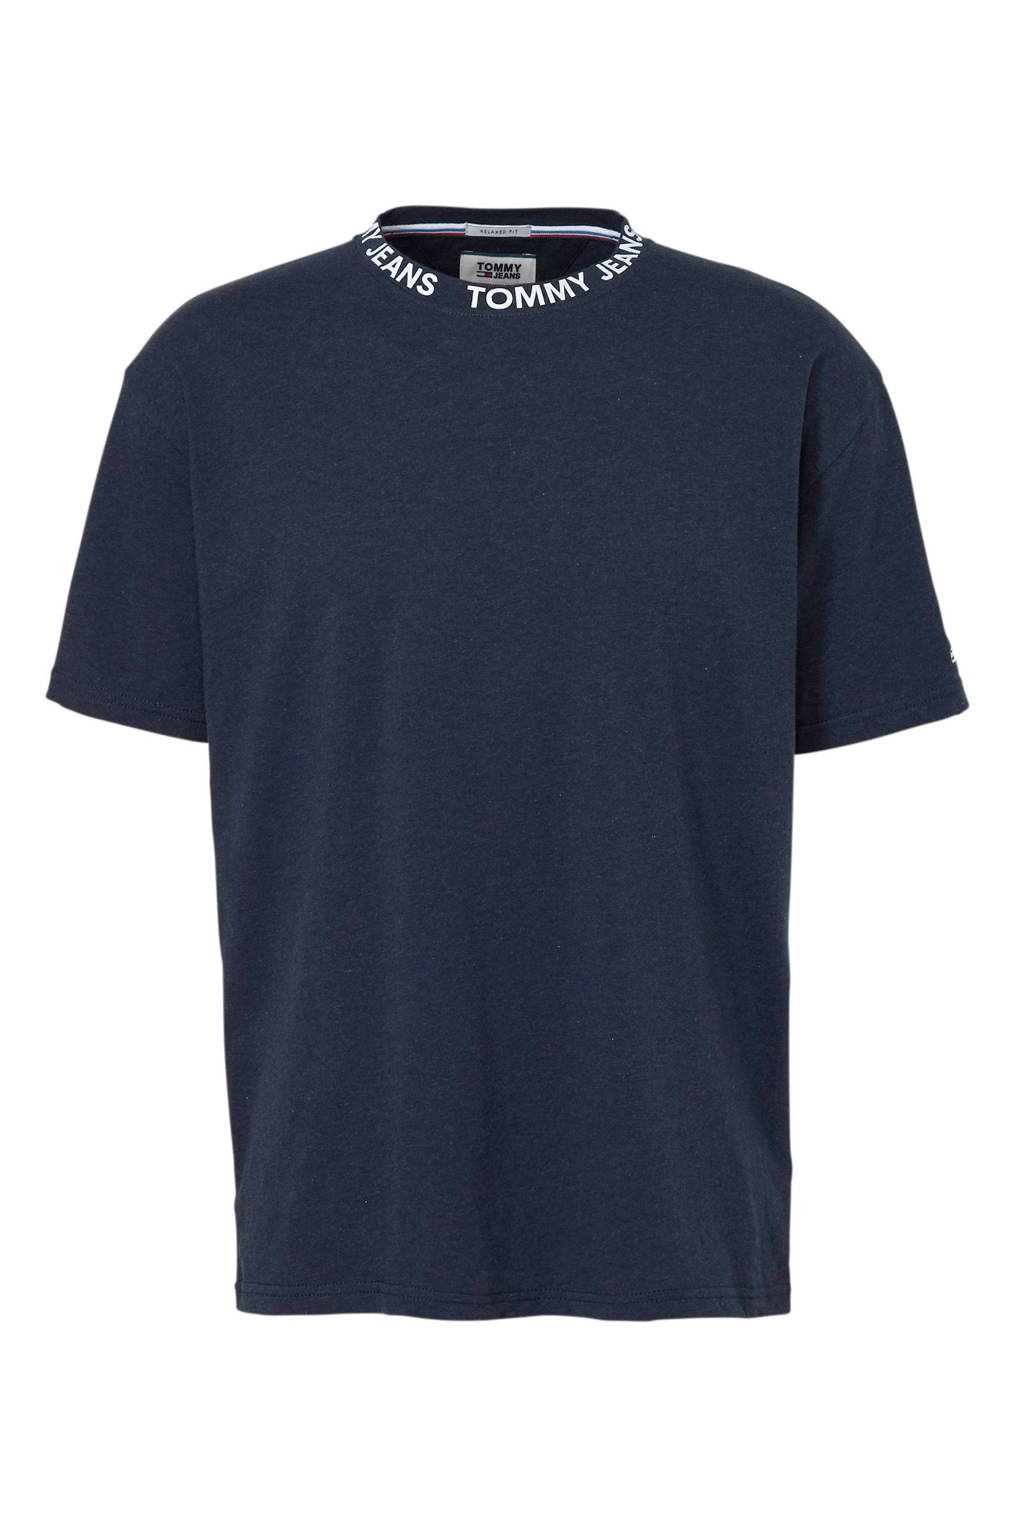 Tommy Jeans relaxed fit T-shirt, Donkerblauw